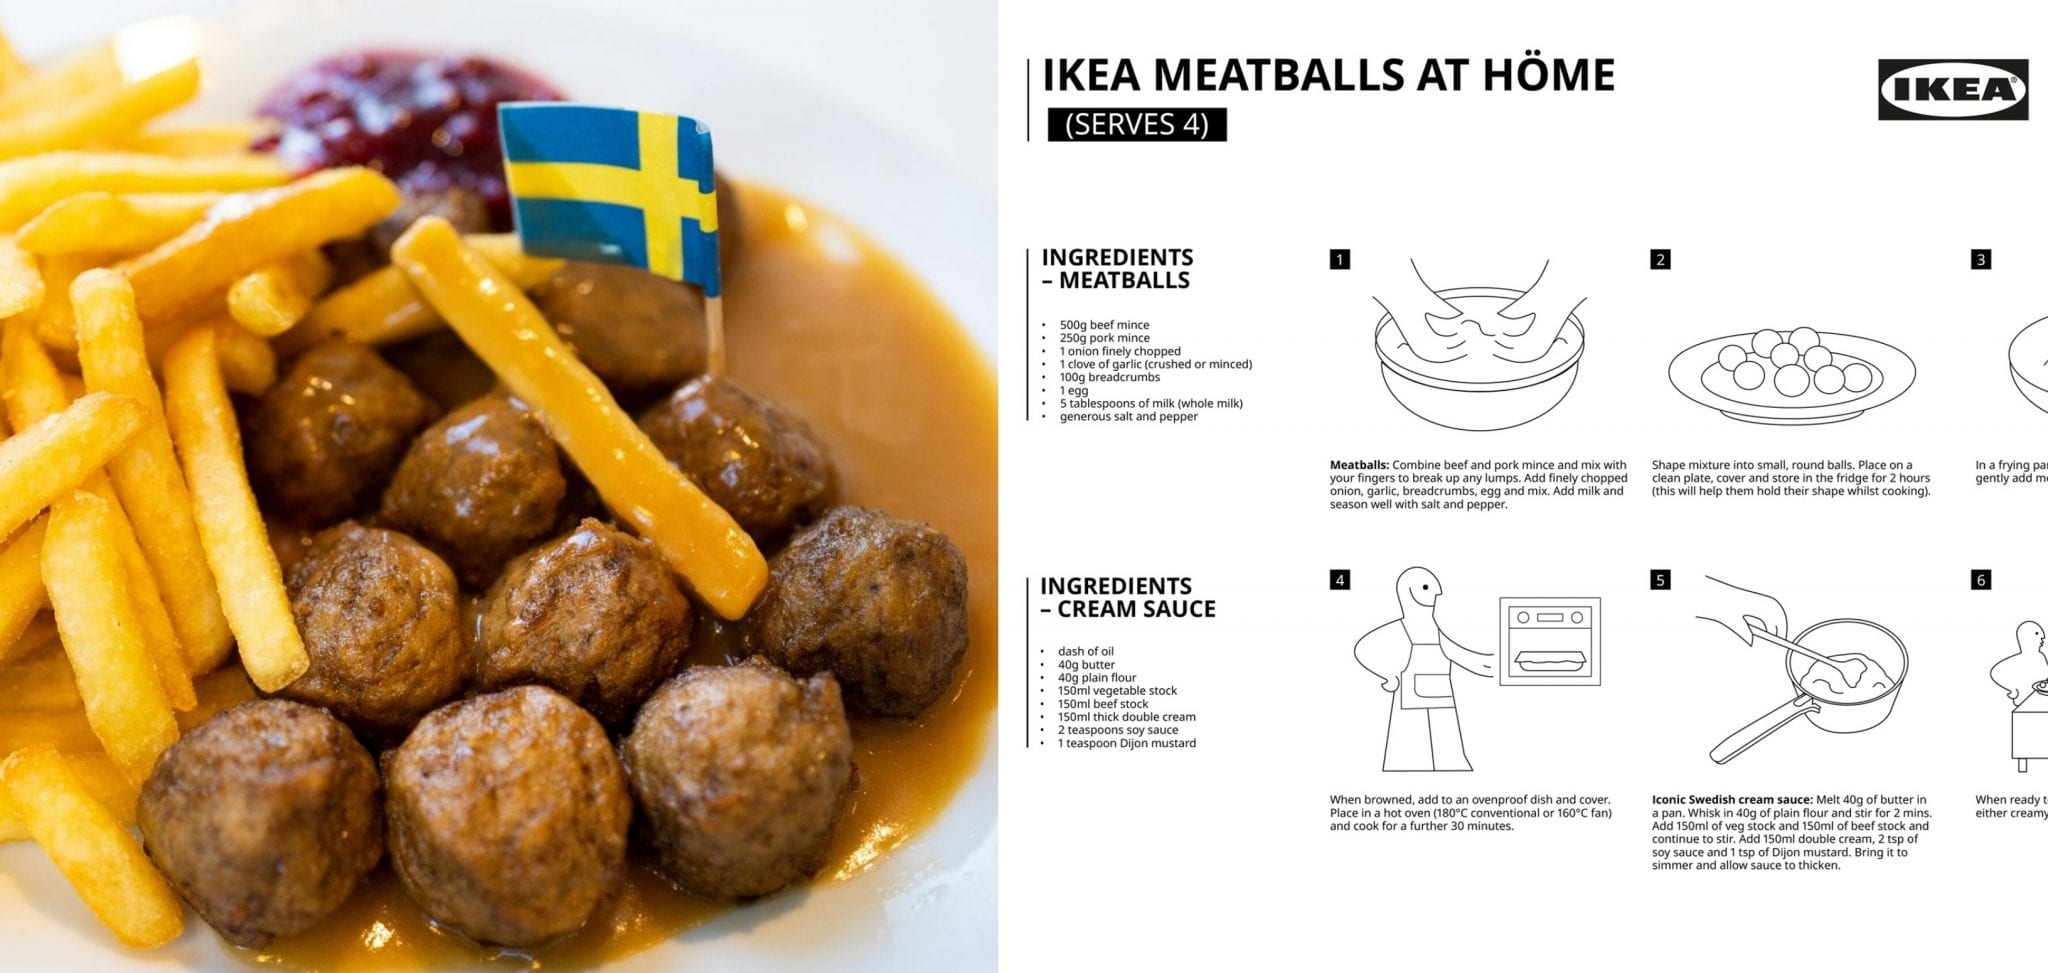 Here S The Official Recipe For Those Iconic Ikea Meatballs You Re